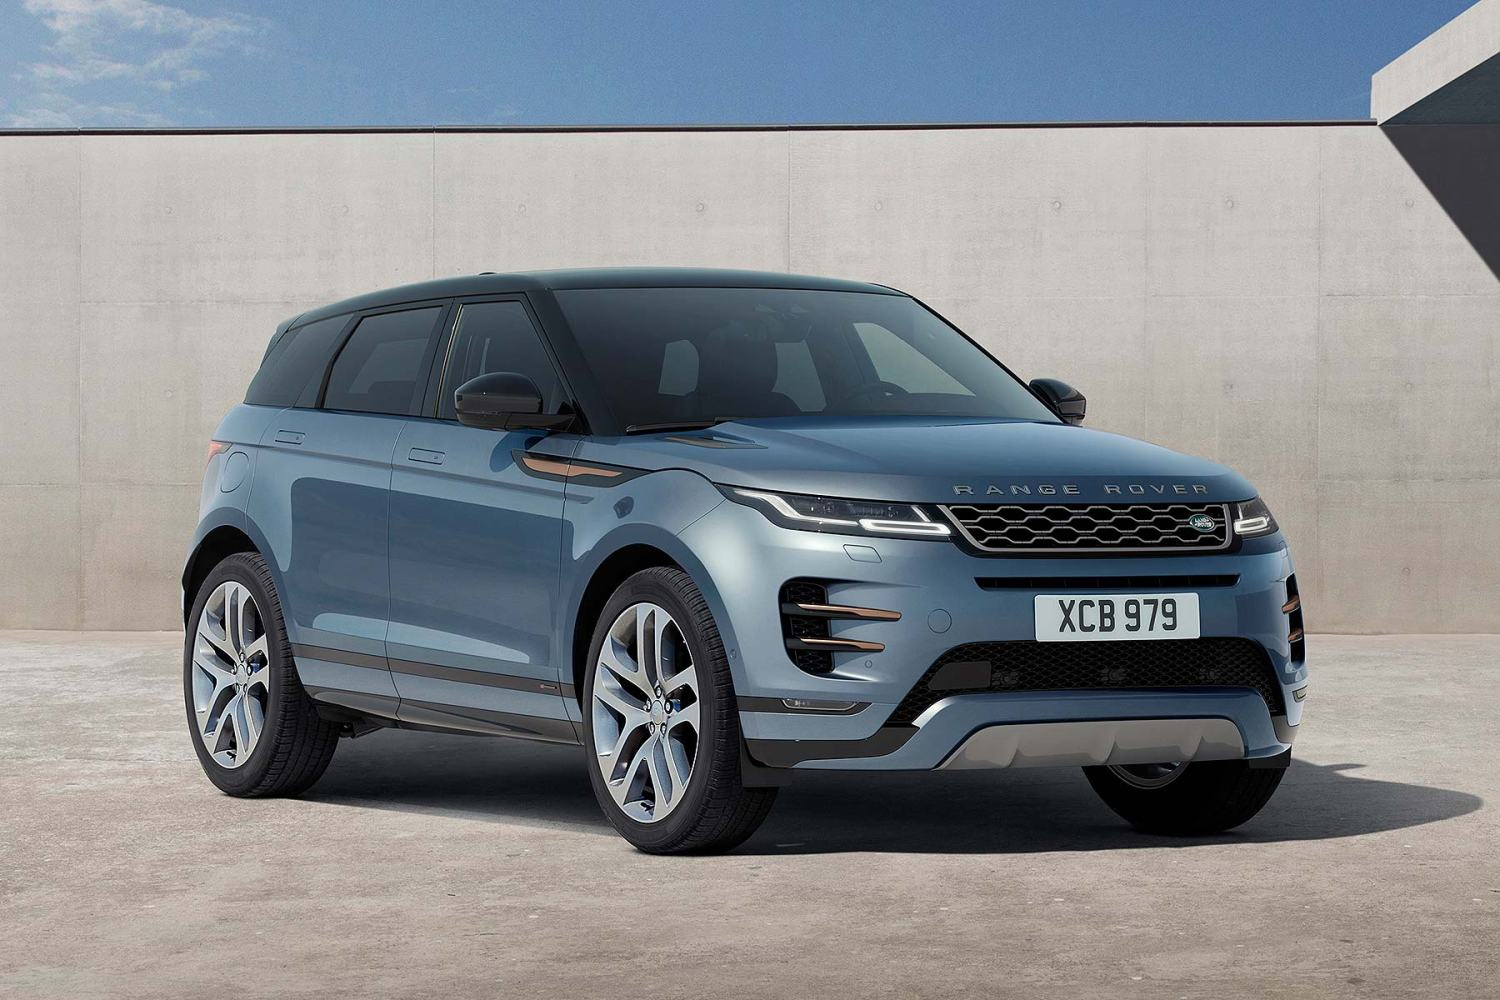 New 2019 Range Rover Evoque Revealed And Ordering Is Open Now